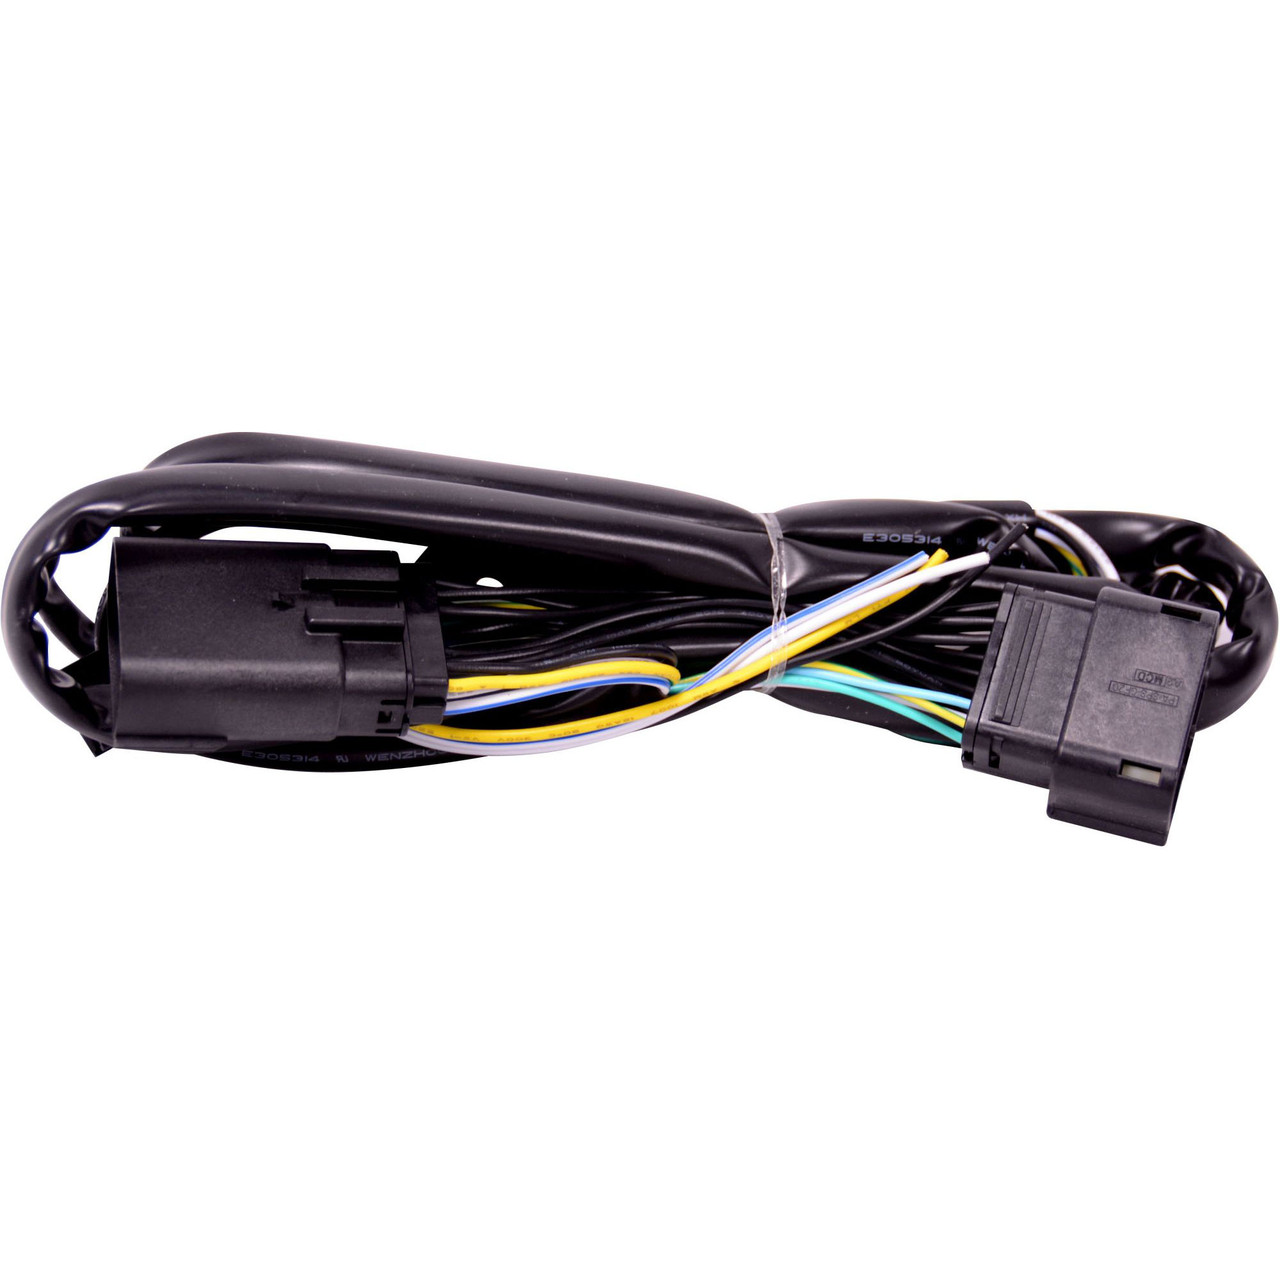 medium resolution of arc audio hd rsh rear speaker amplifier interface t harness for 2015 and newer harley davidson touring motorcycles creative audio